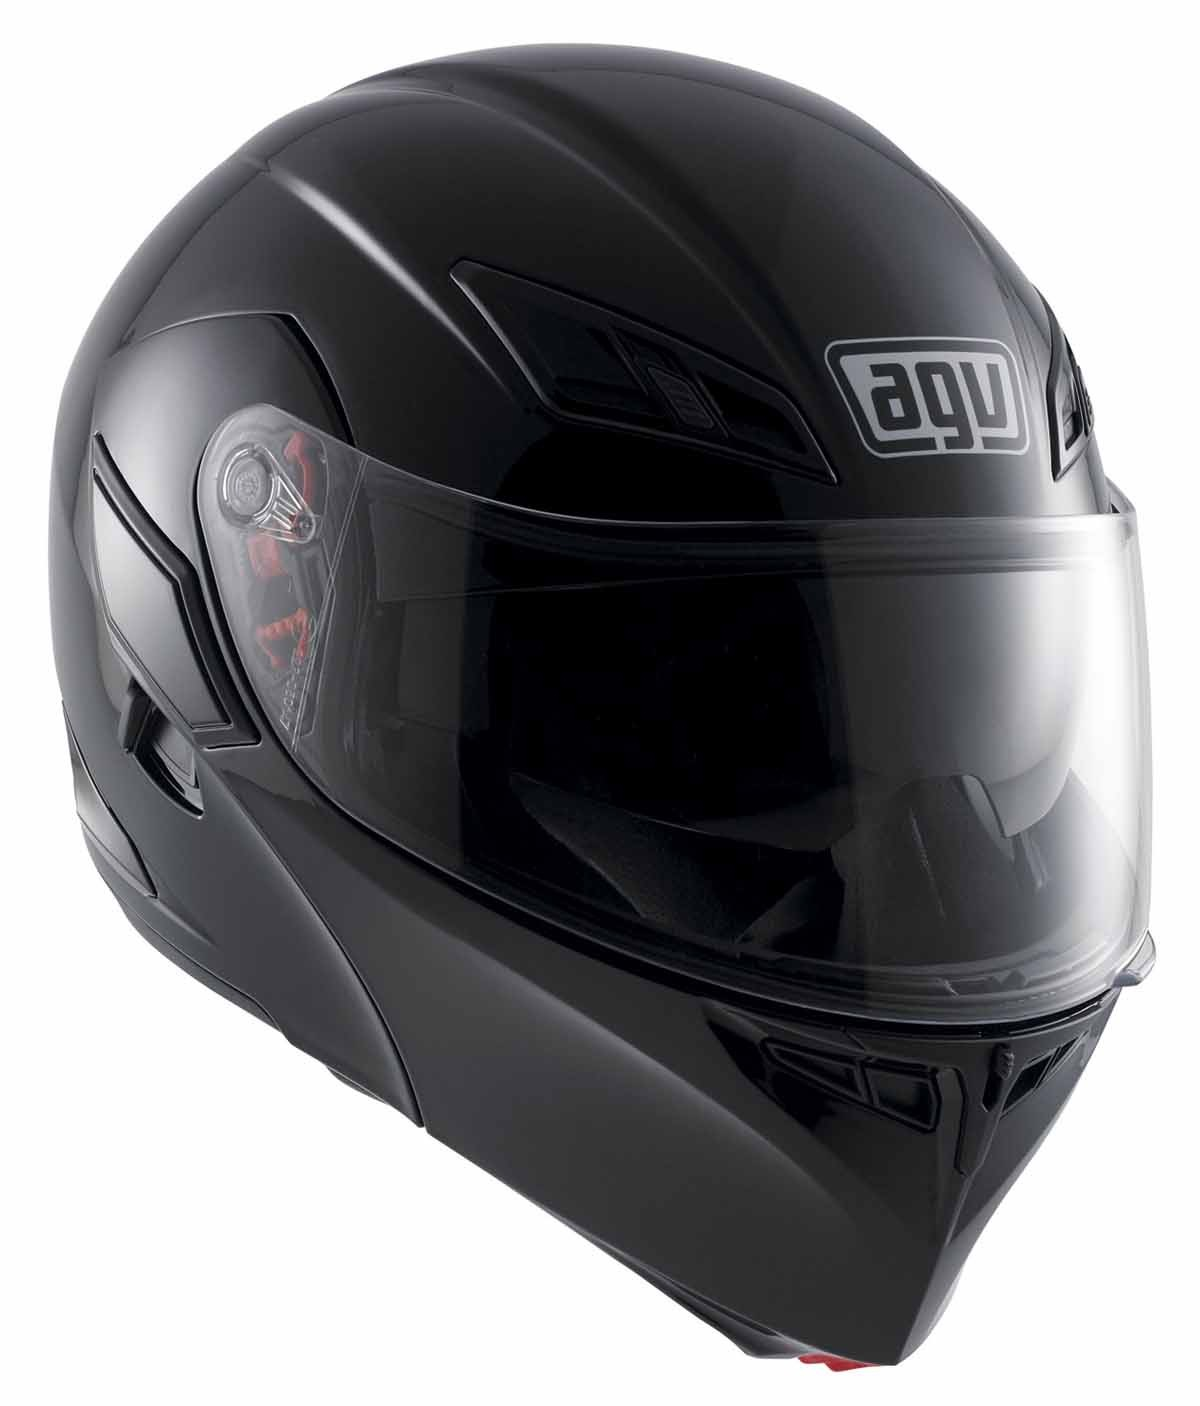 Get it delivered to your door - AGV COMPACT - 5650 (EGP)